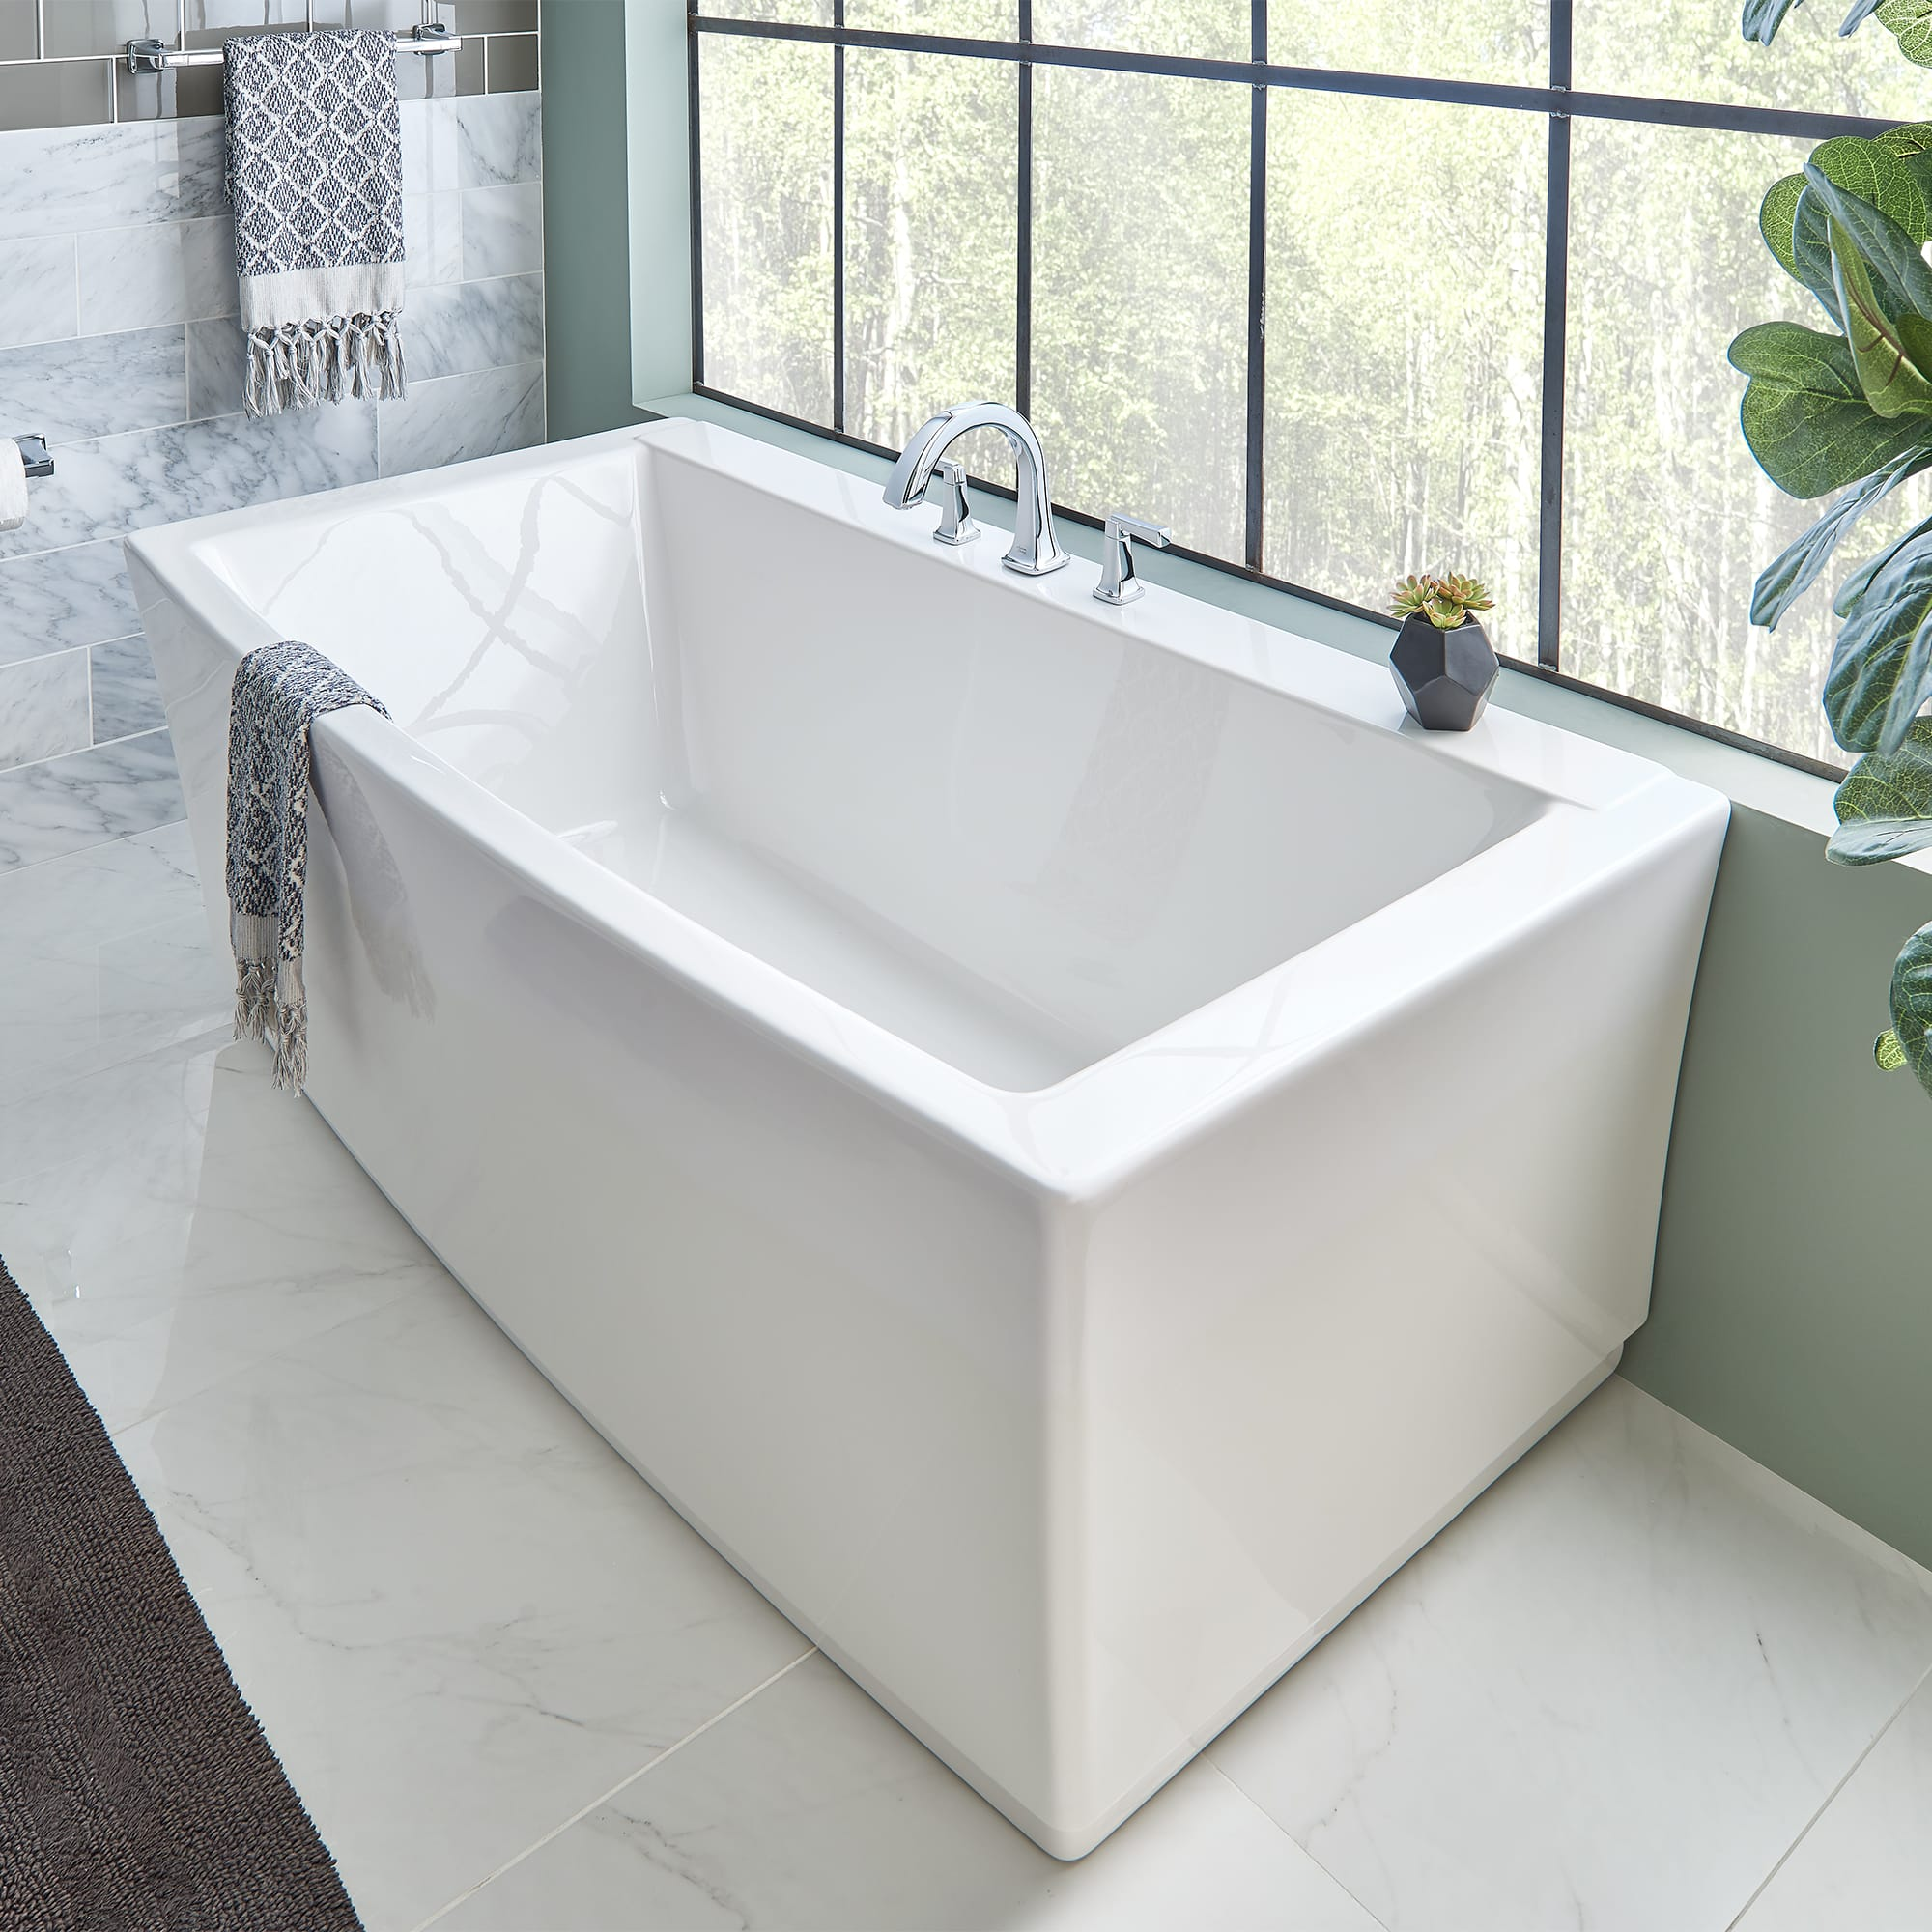 corner fiberglass bathtub bath types bathtubs standard faucets slipper bathroom tub kohler american of freestanding vanity